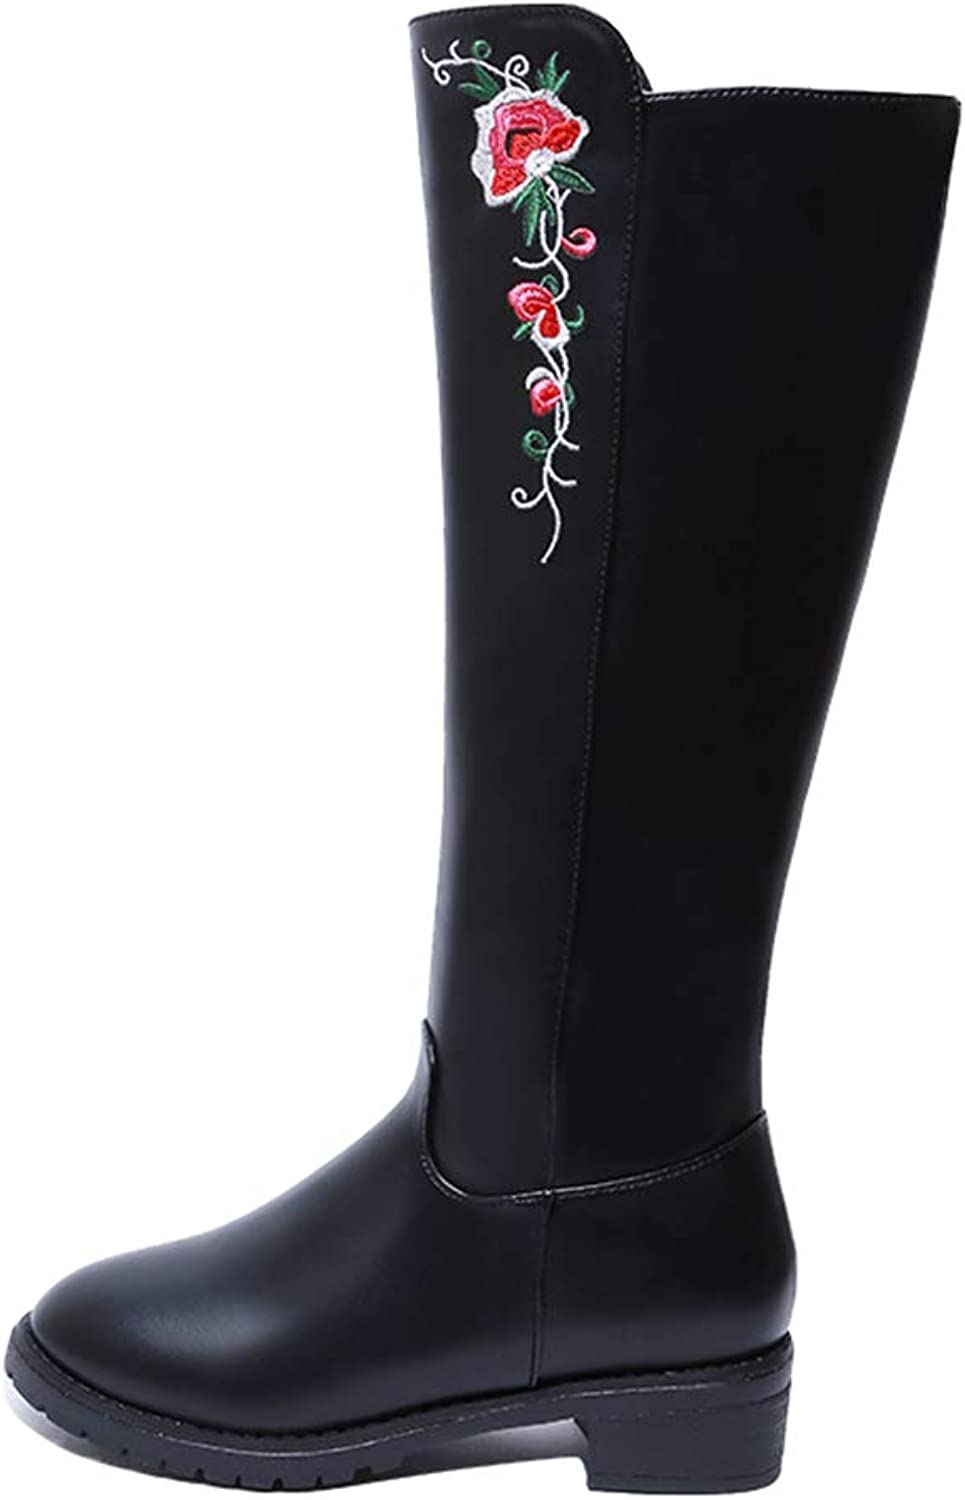 Women Fashion Embroidered Knee-high Boots Med Heel Winter Slip-on Casual Long Booties